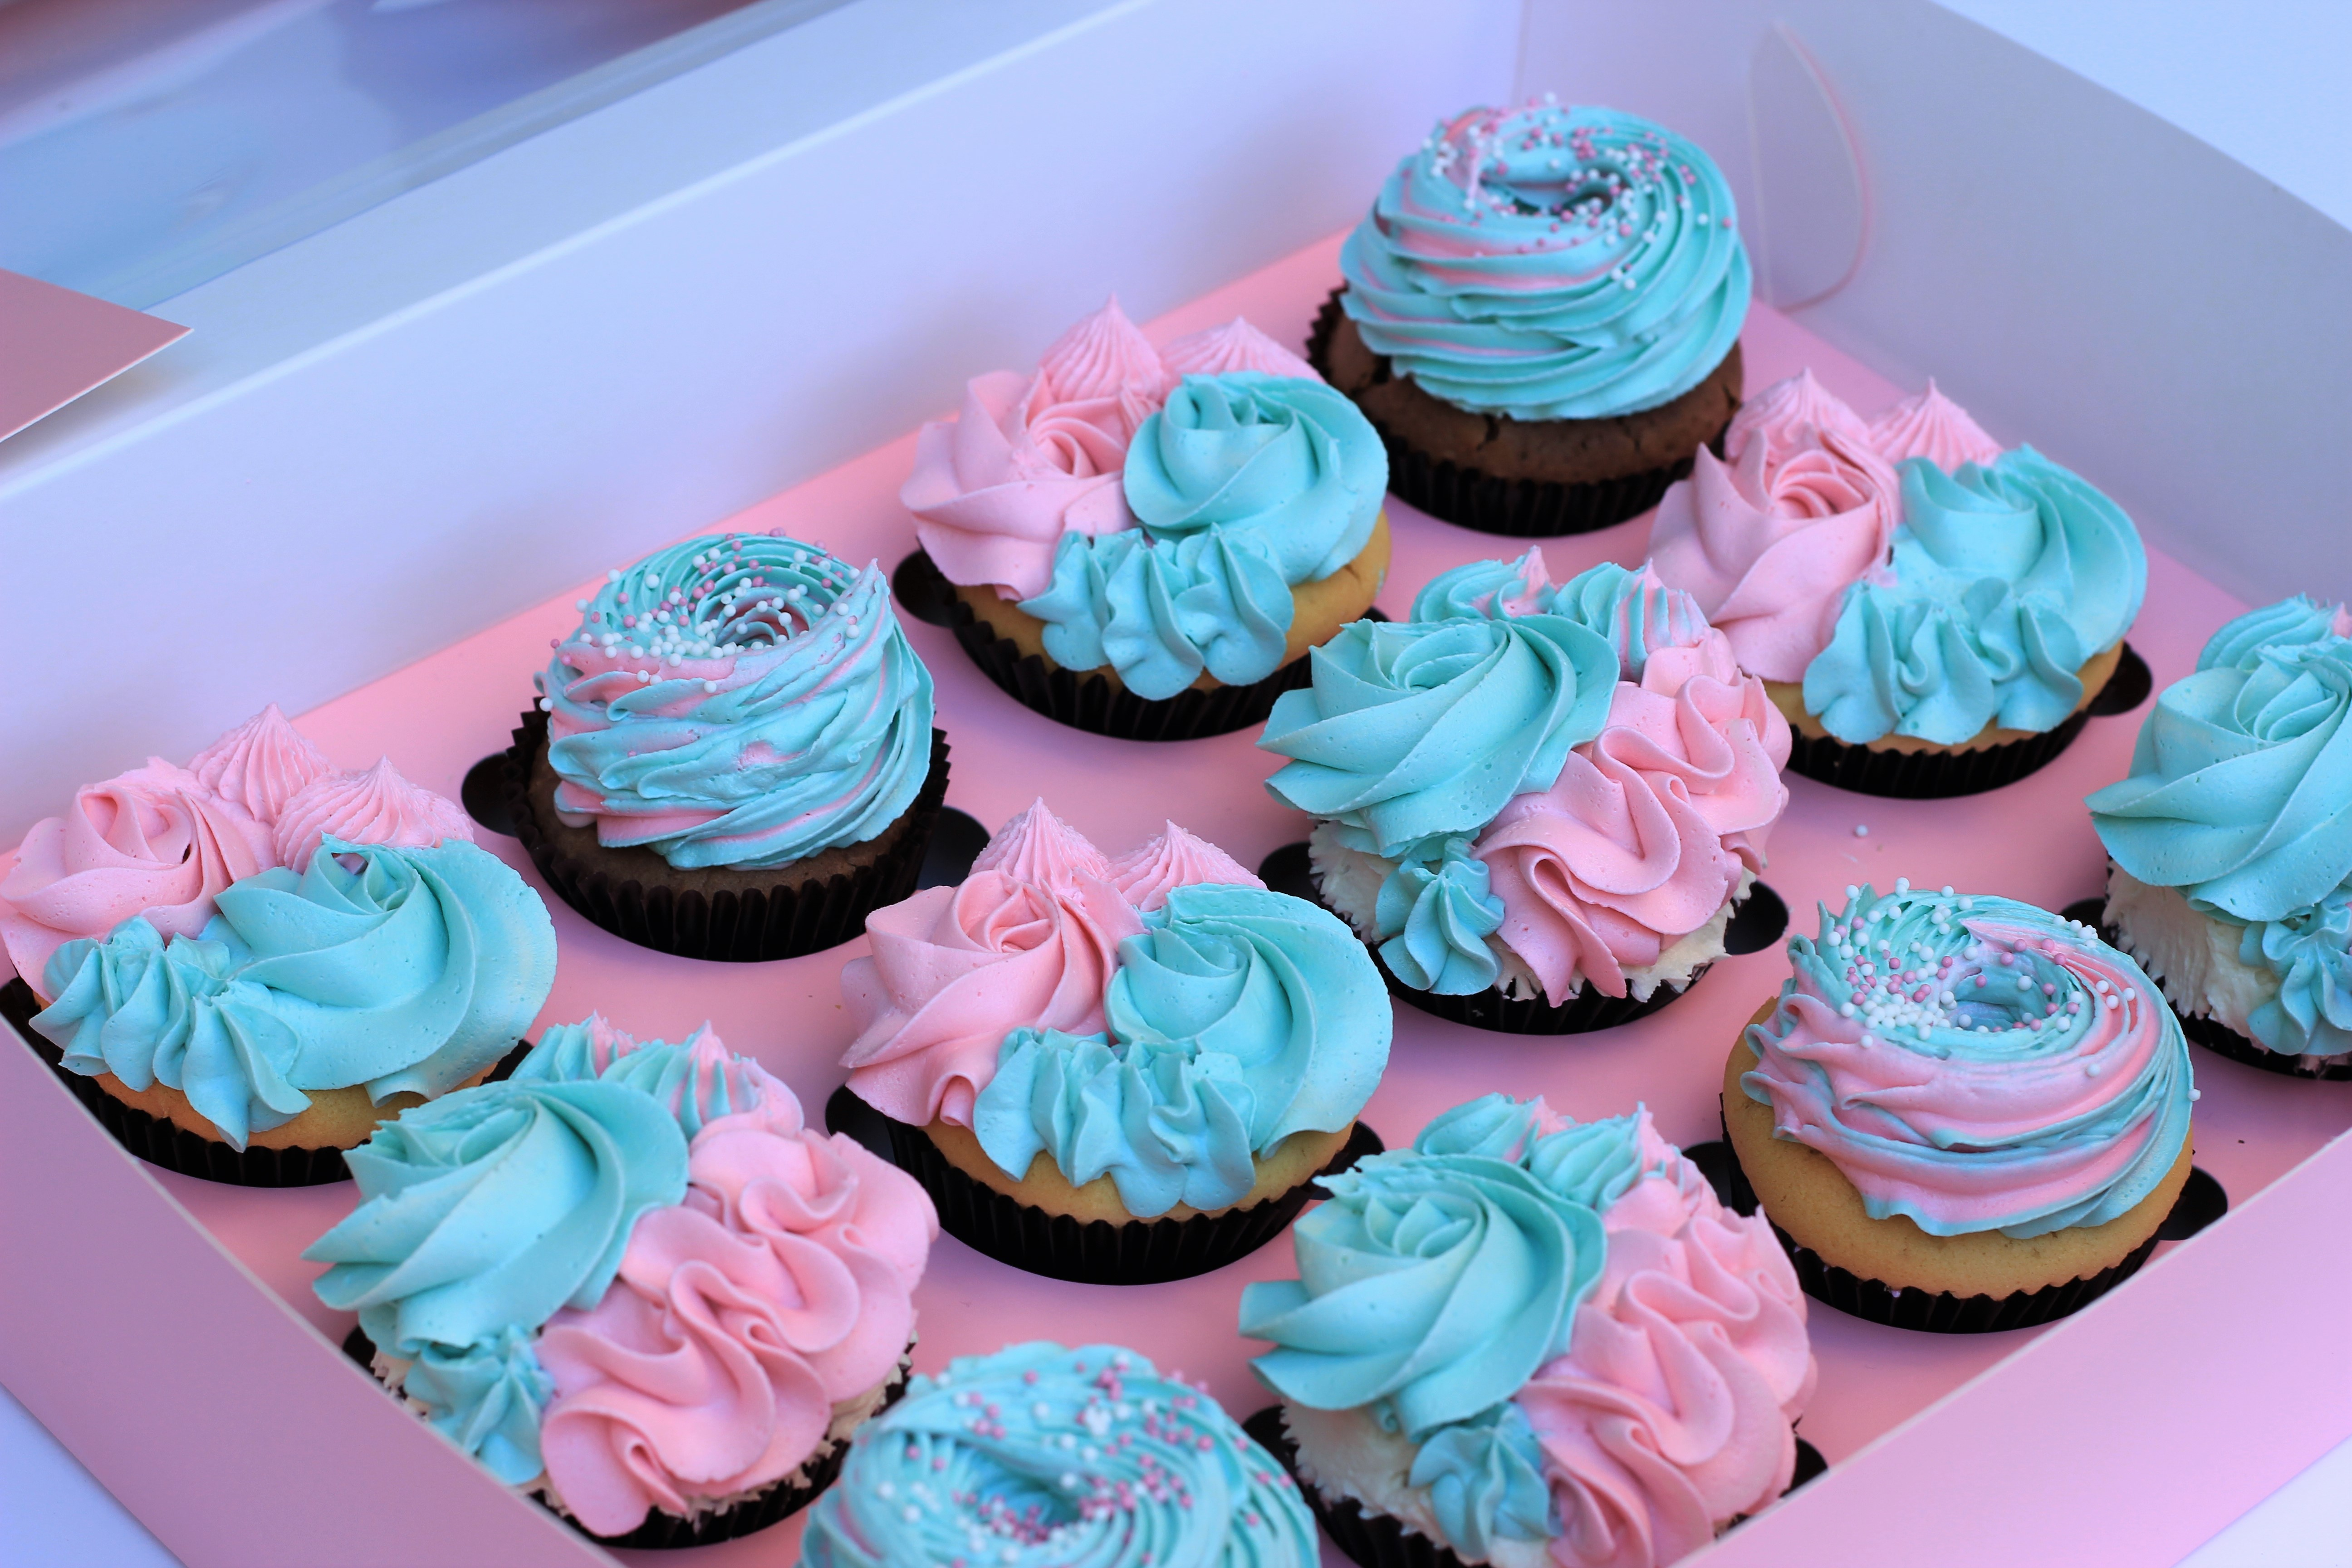 Inspirational Gender Reveal Baby Shower Cupcakes - Stormie D's Cupcakery intended for Baby Shower Cupcakes